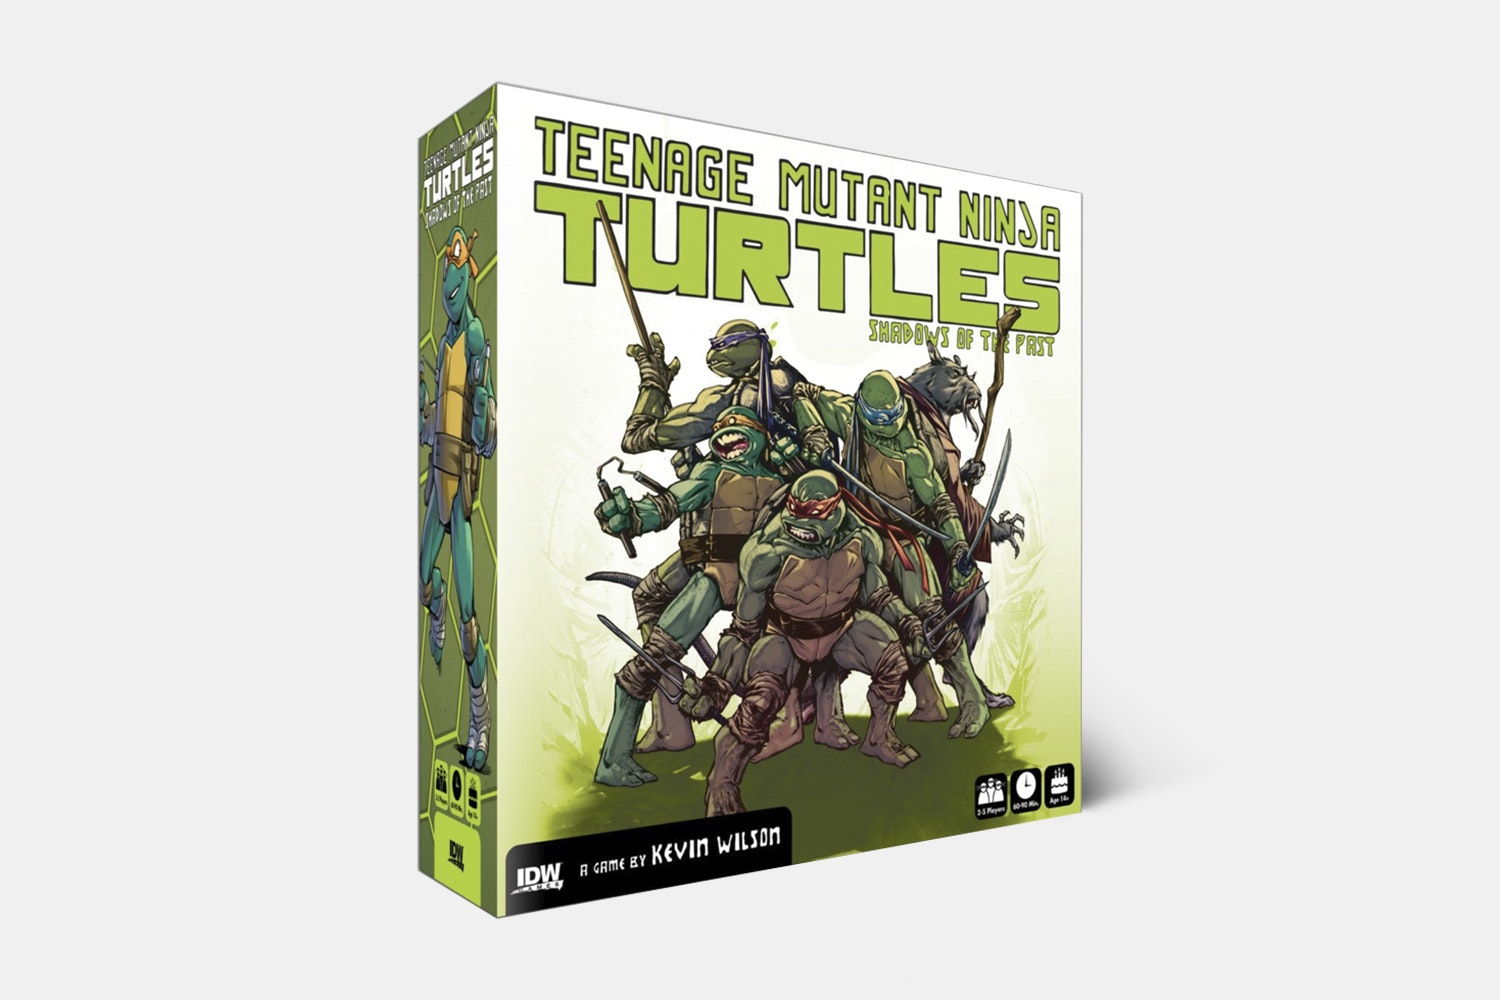 TMNT: Shadows of the Past Bundle